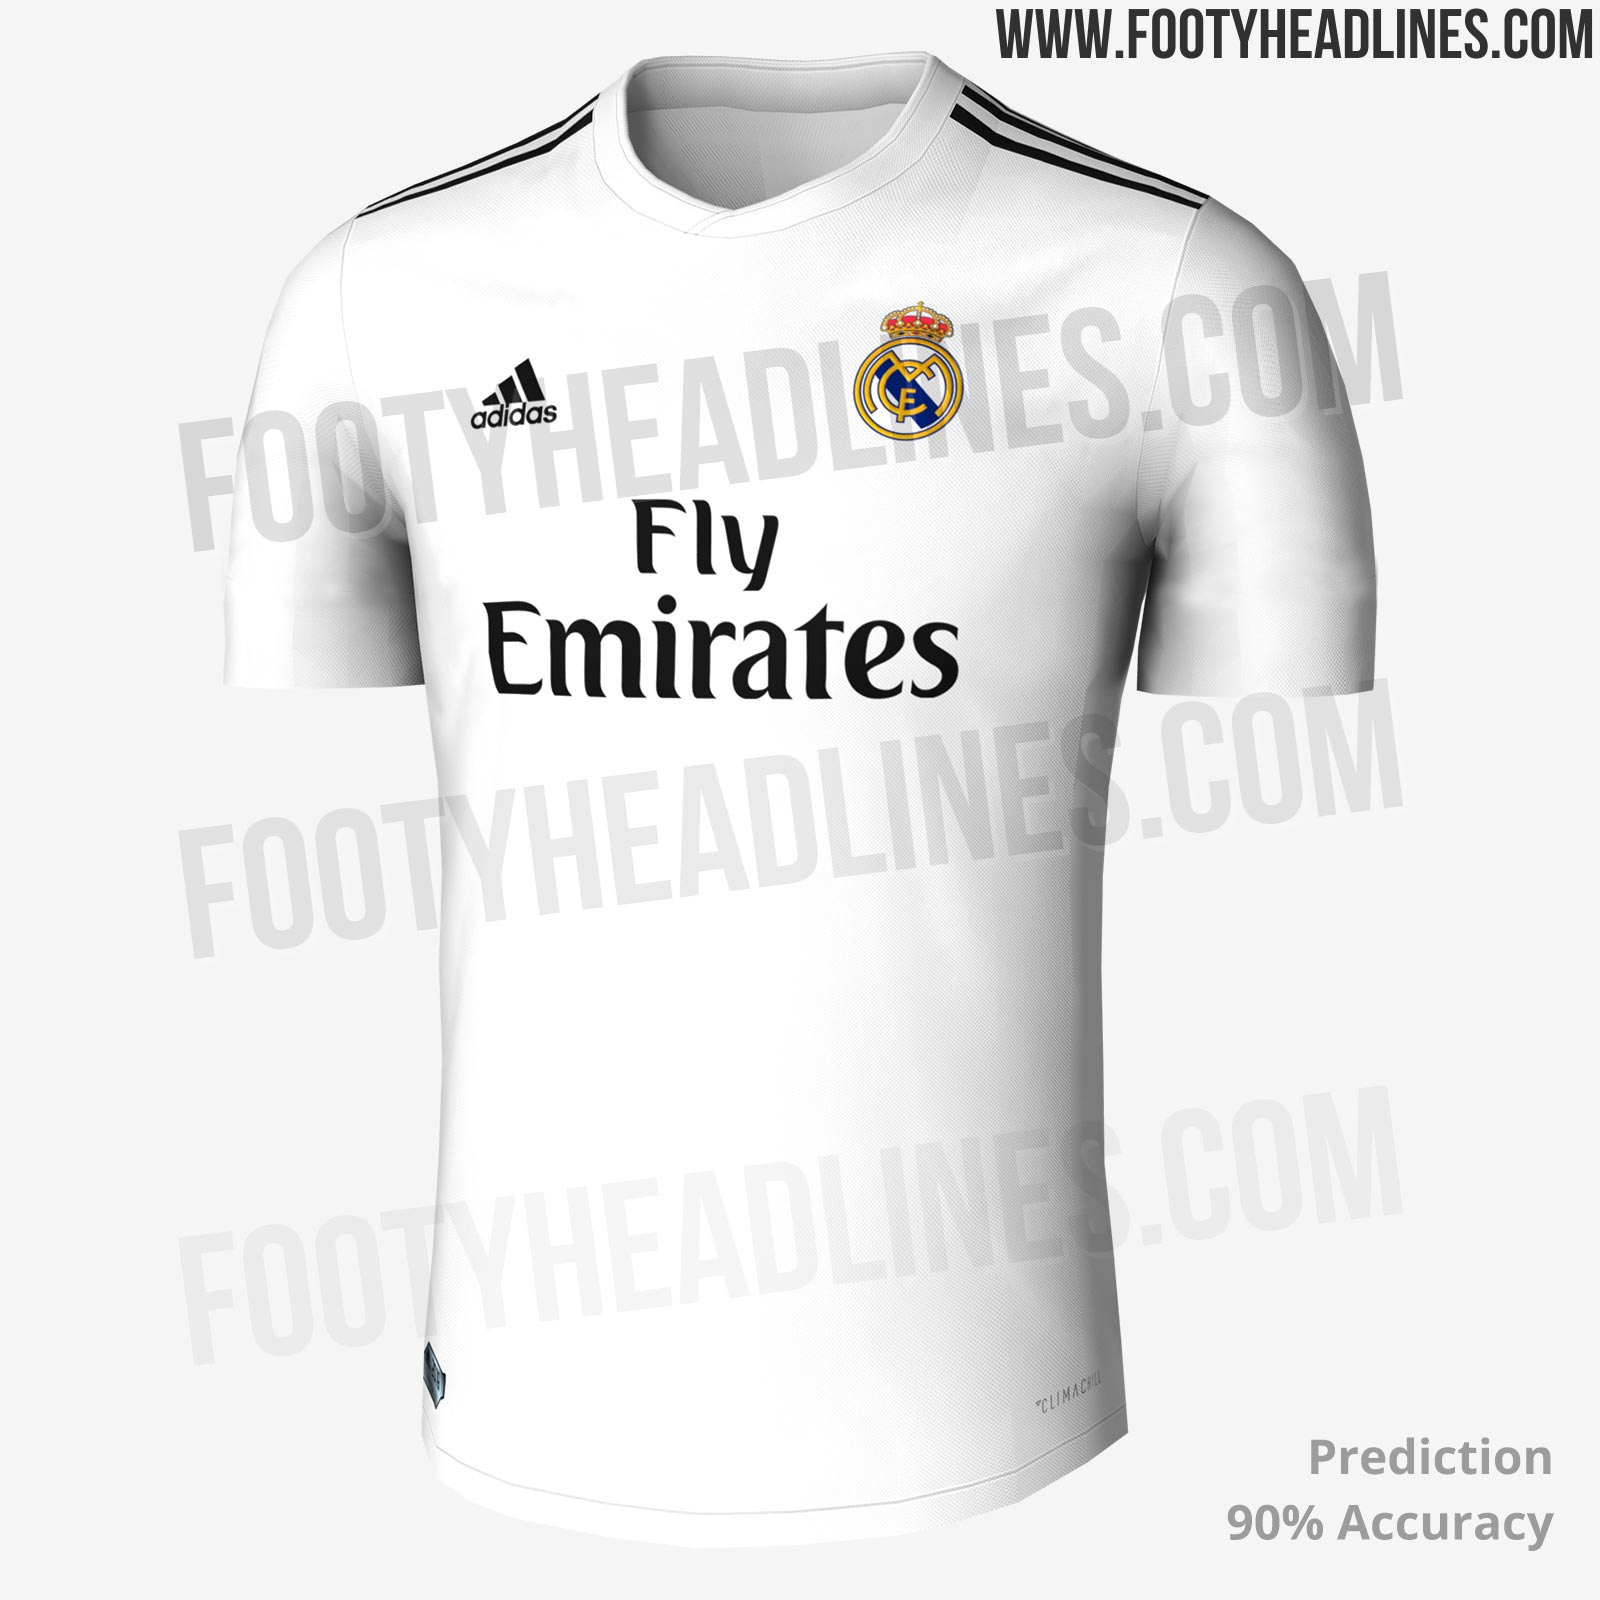 real-madrid-18-19-home-kit-2.jpg